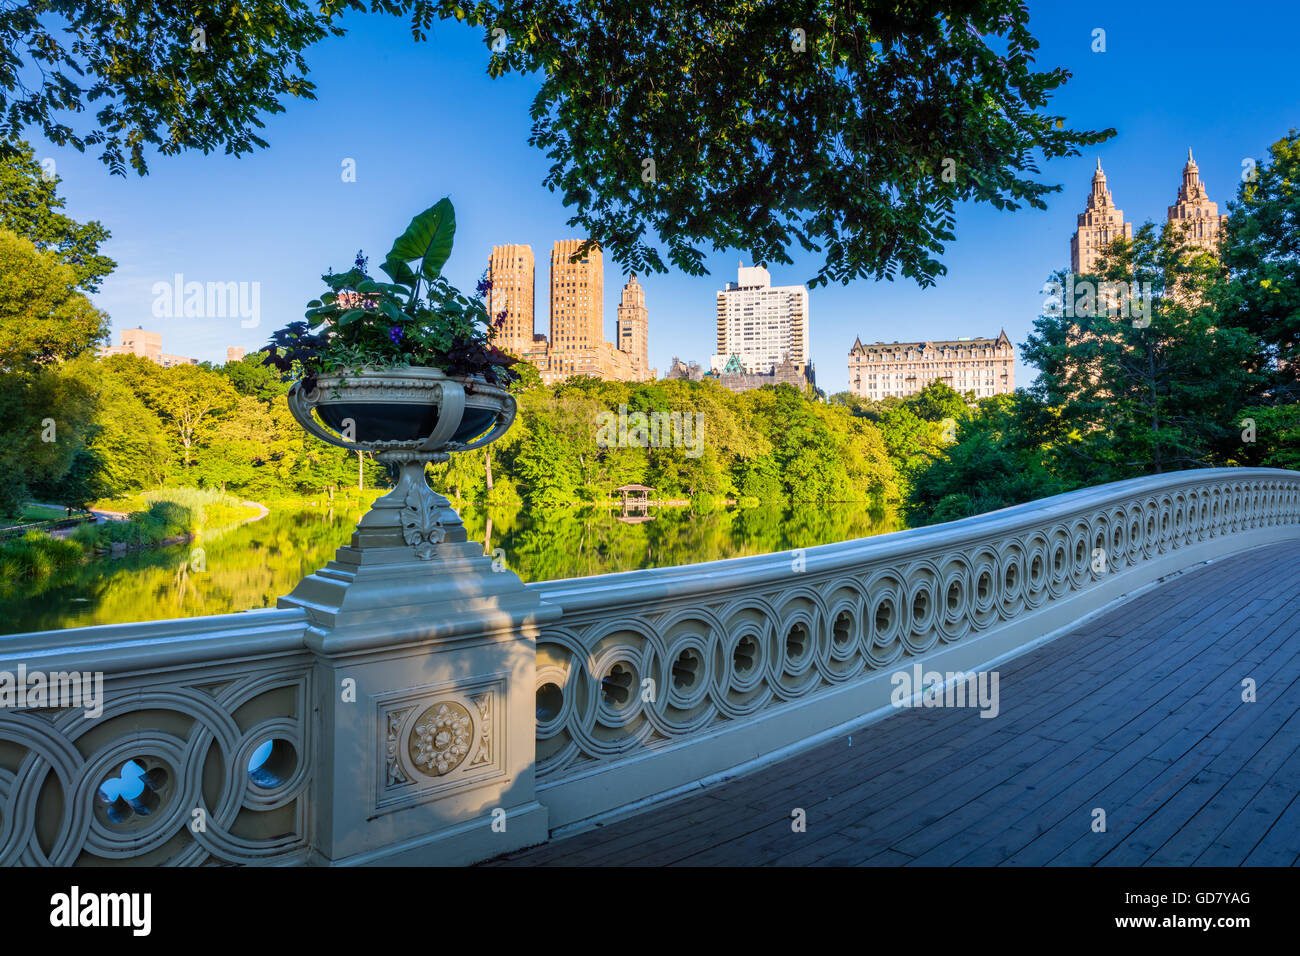 Bow Bridge in Central Park, New York City, with Upper West Side residential buildings visible in the distance - Stock Image